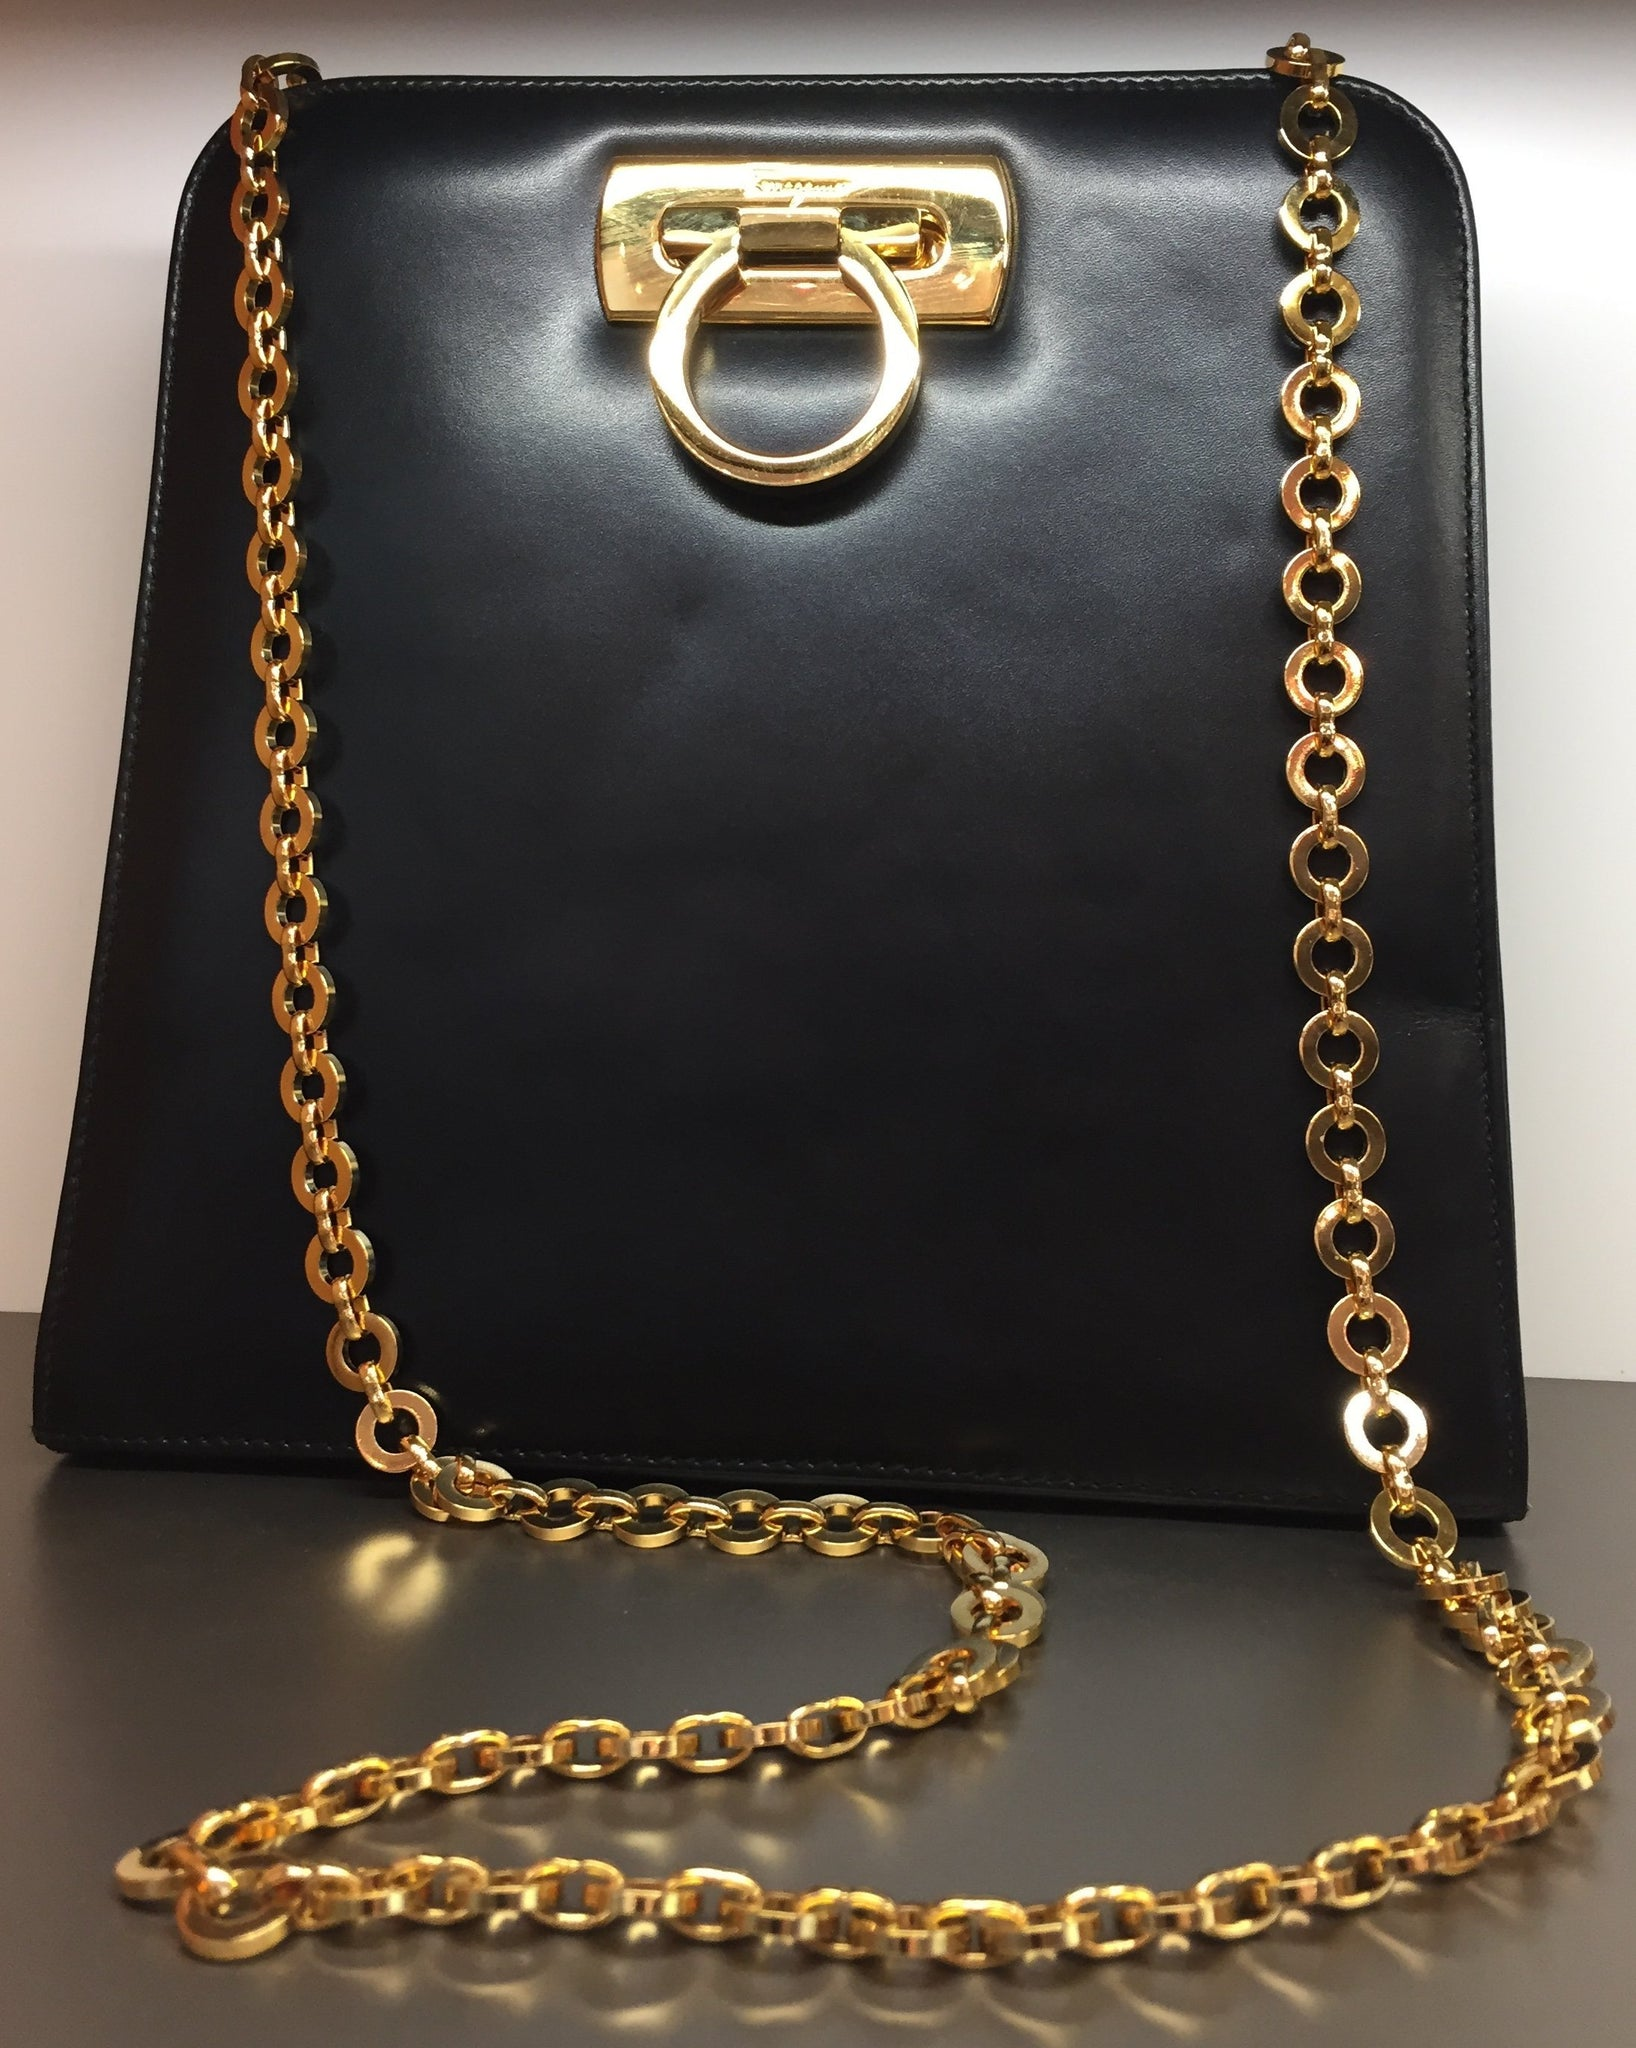 Vintage Salvatore Ferragamo Handbag, SALE, SOLD